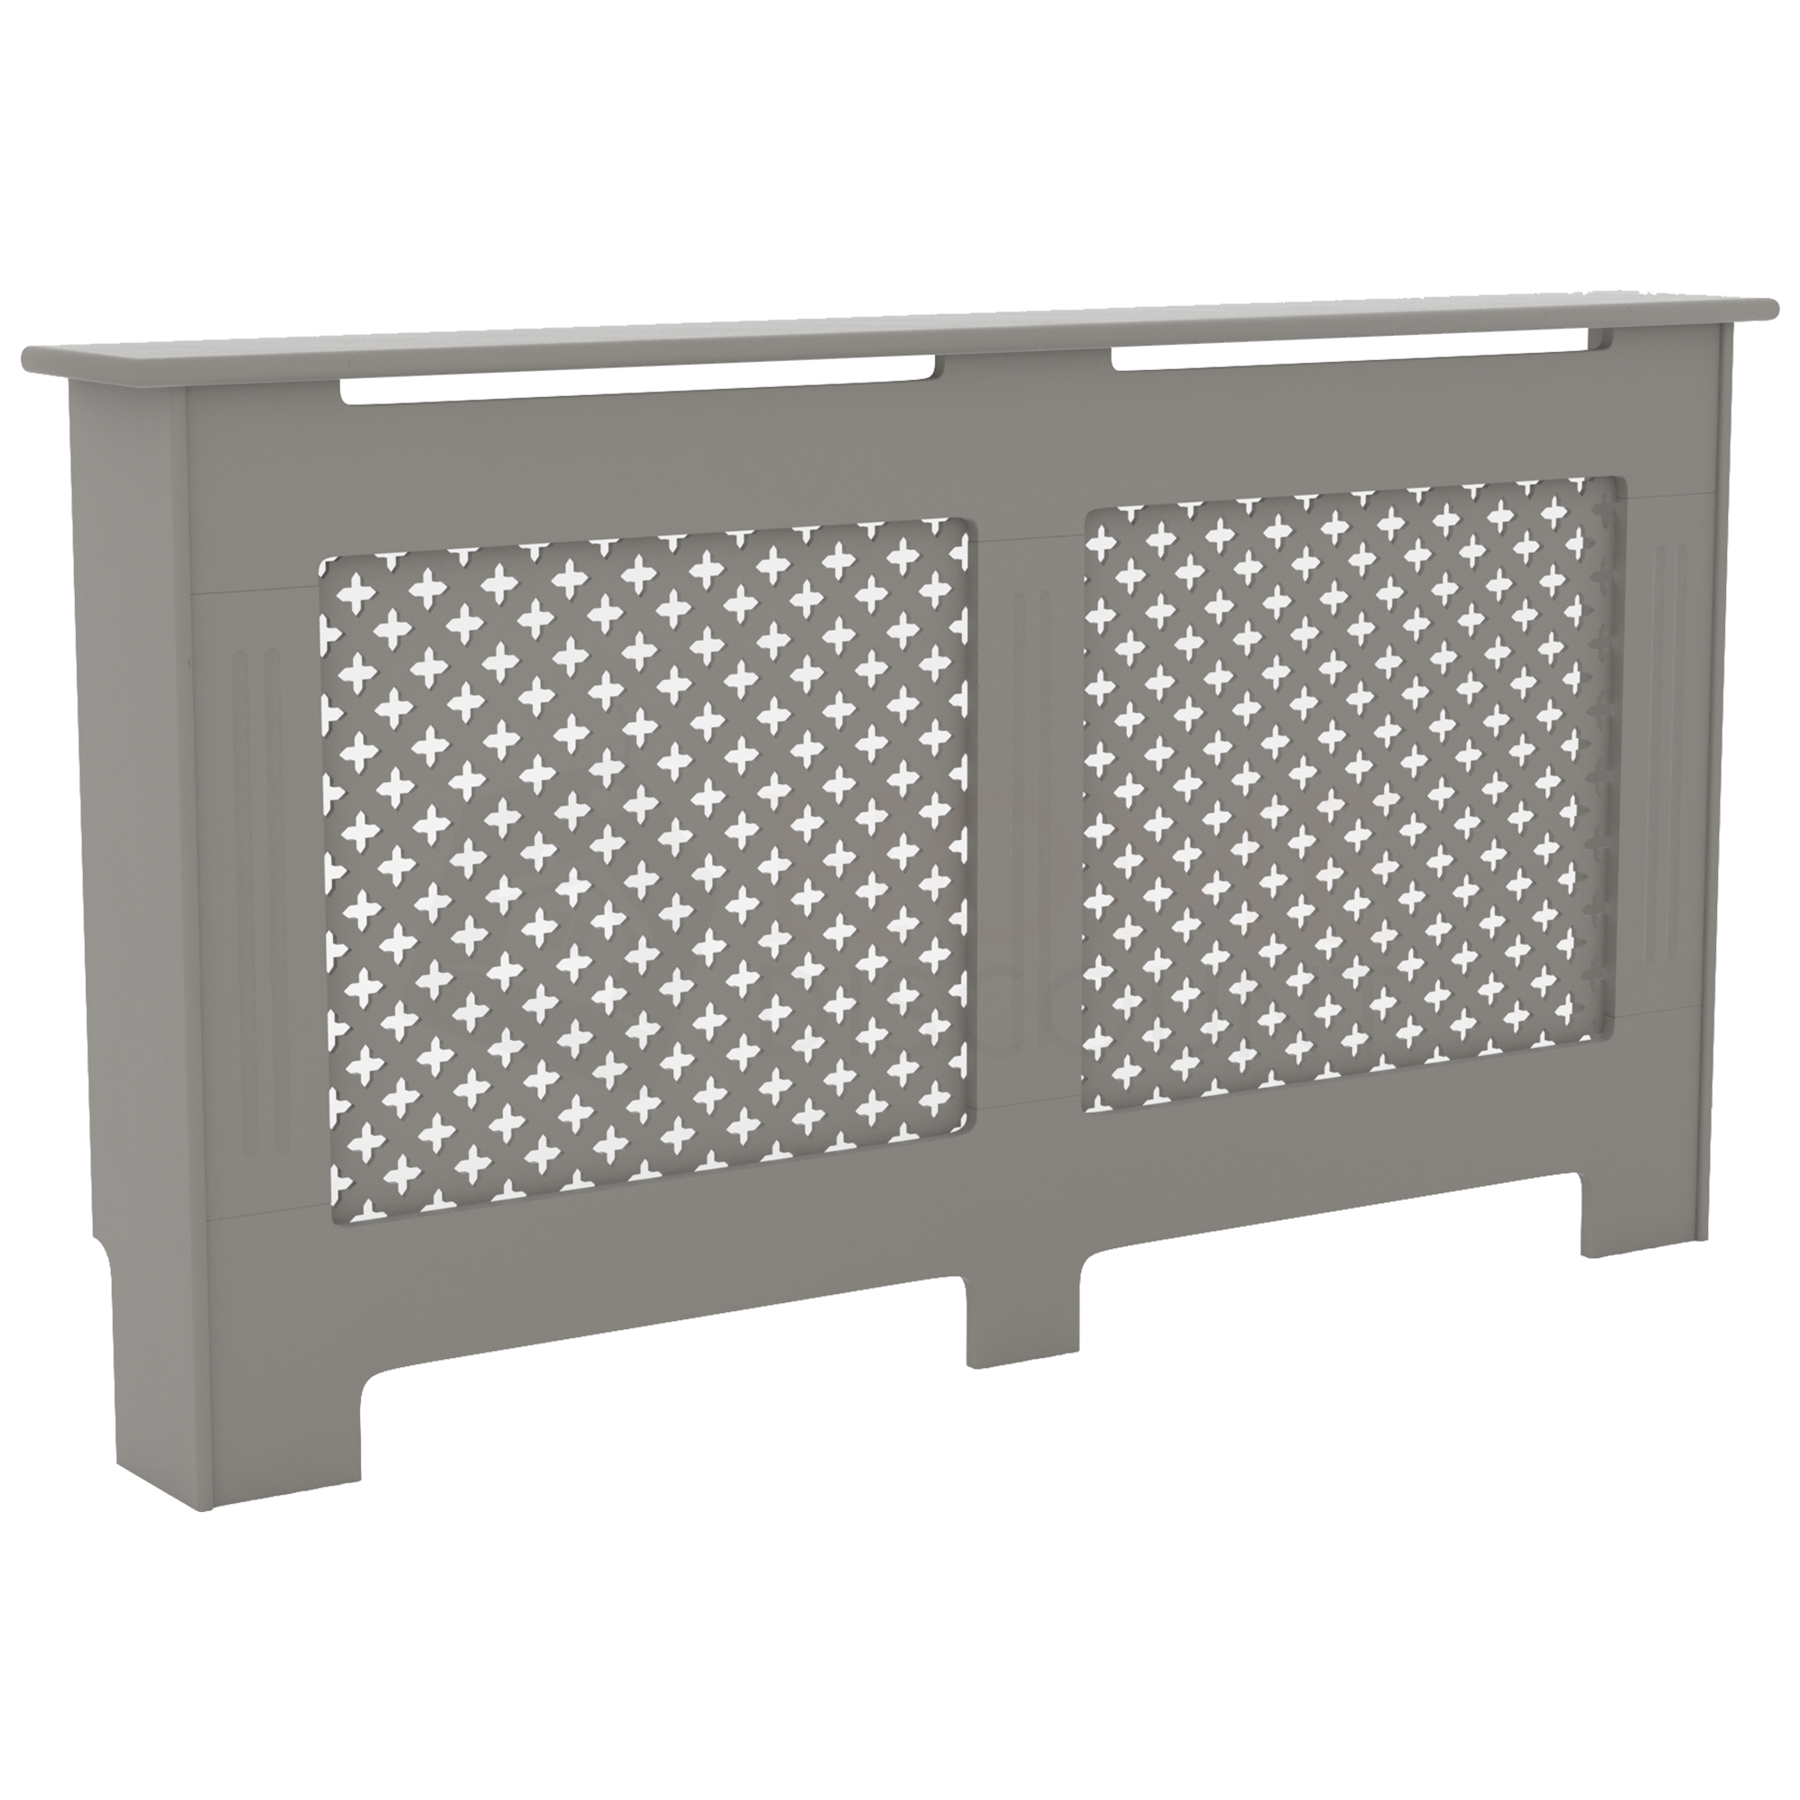 thumbnail 265 - Radiator Cover White Unfinished Modern Traditional Wood Grill Cabinet Furniture